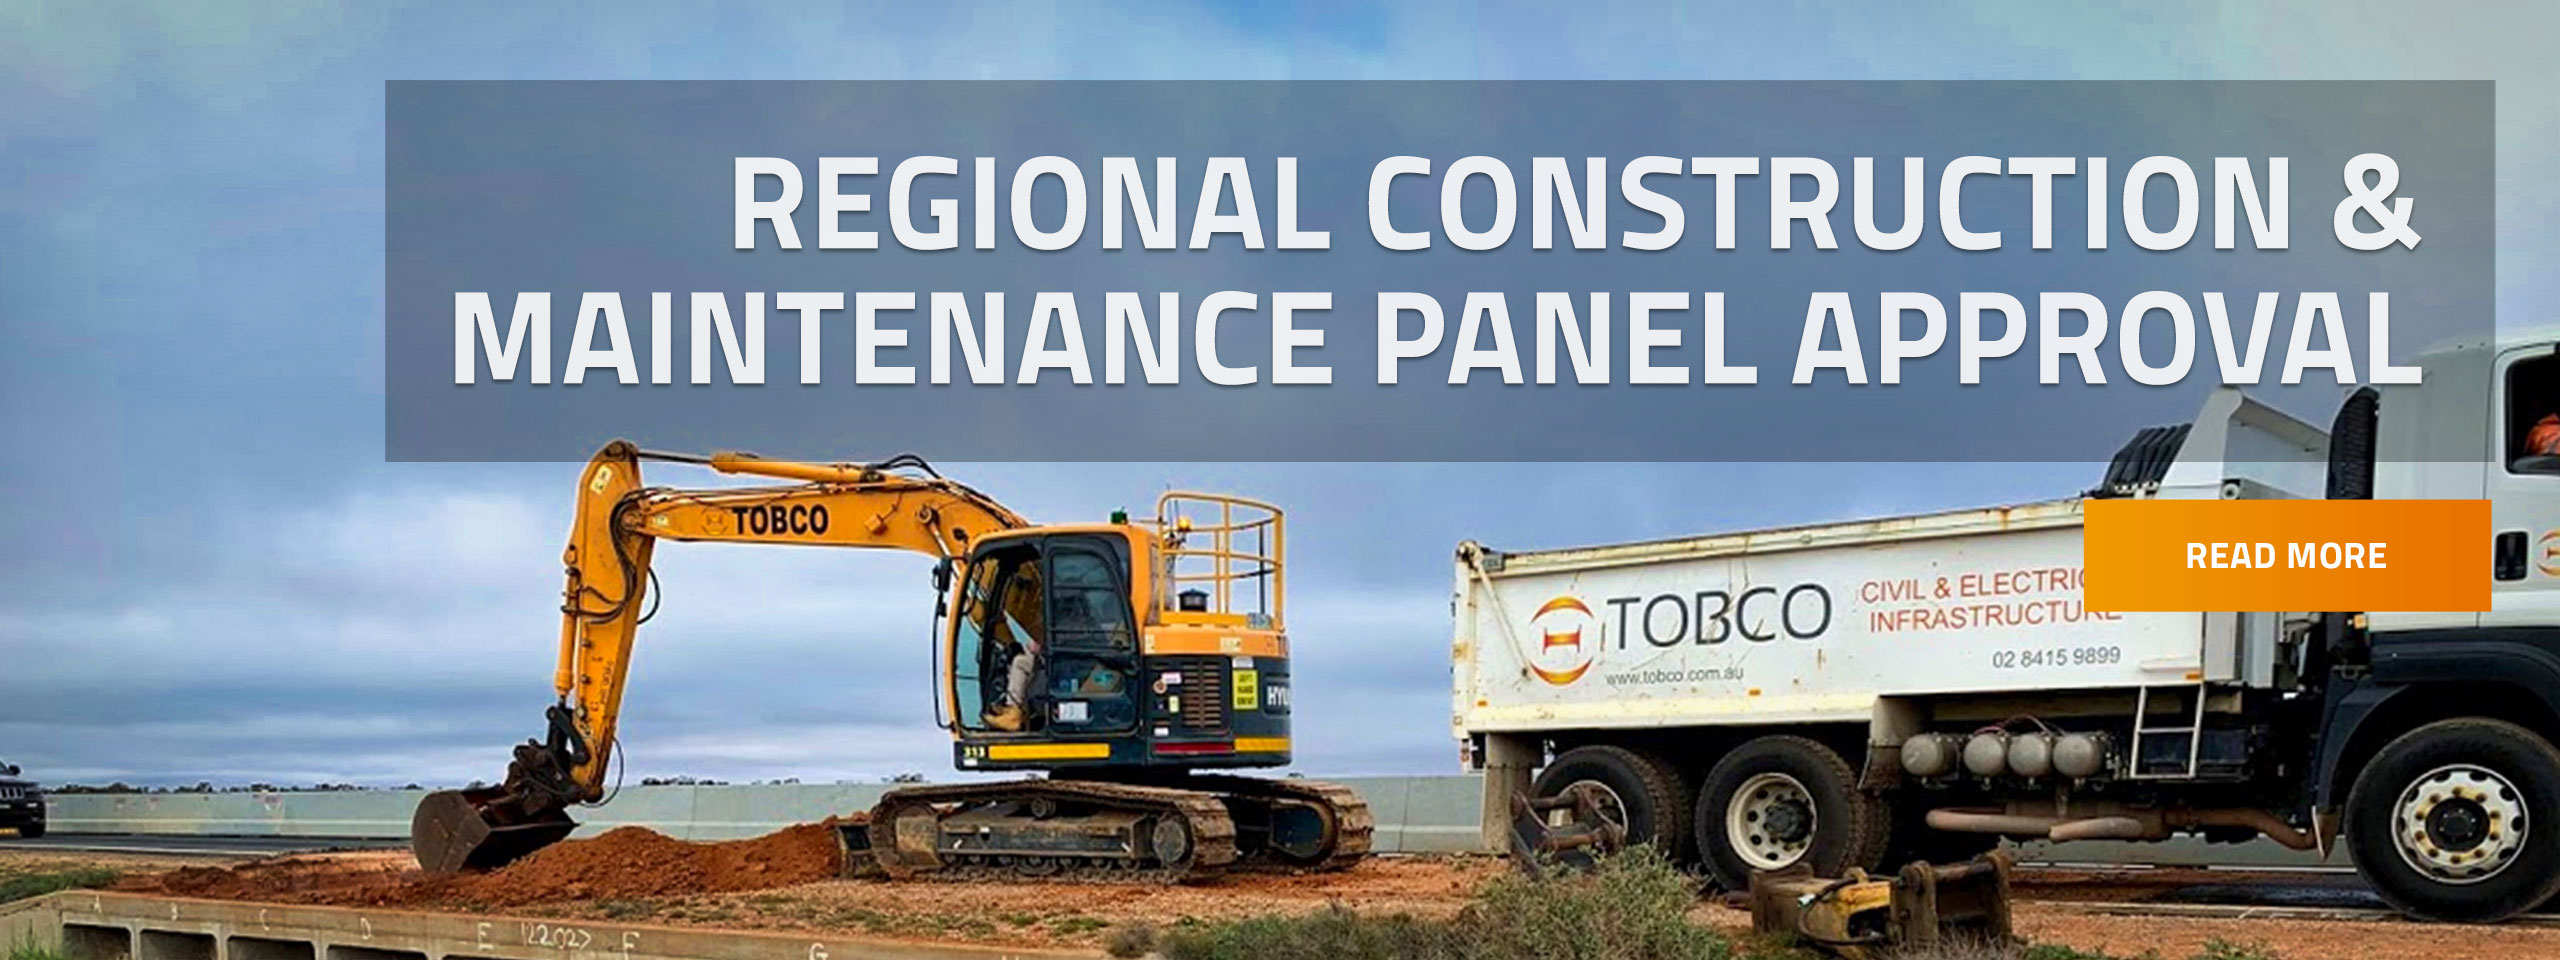 news-regional-construction-and-maintenance-panel-approval